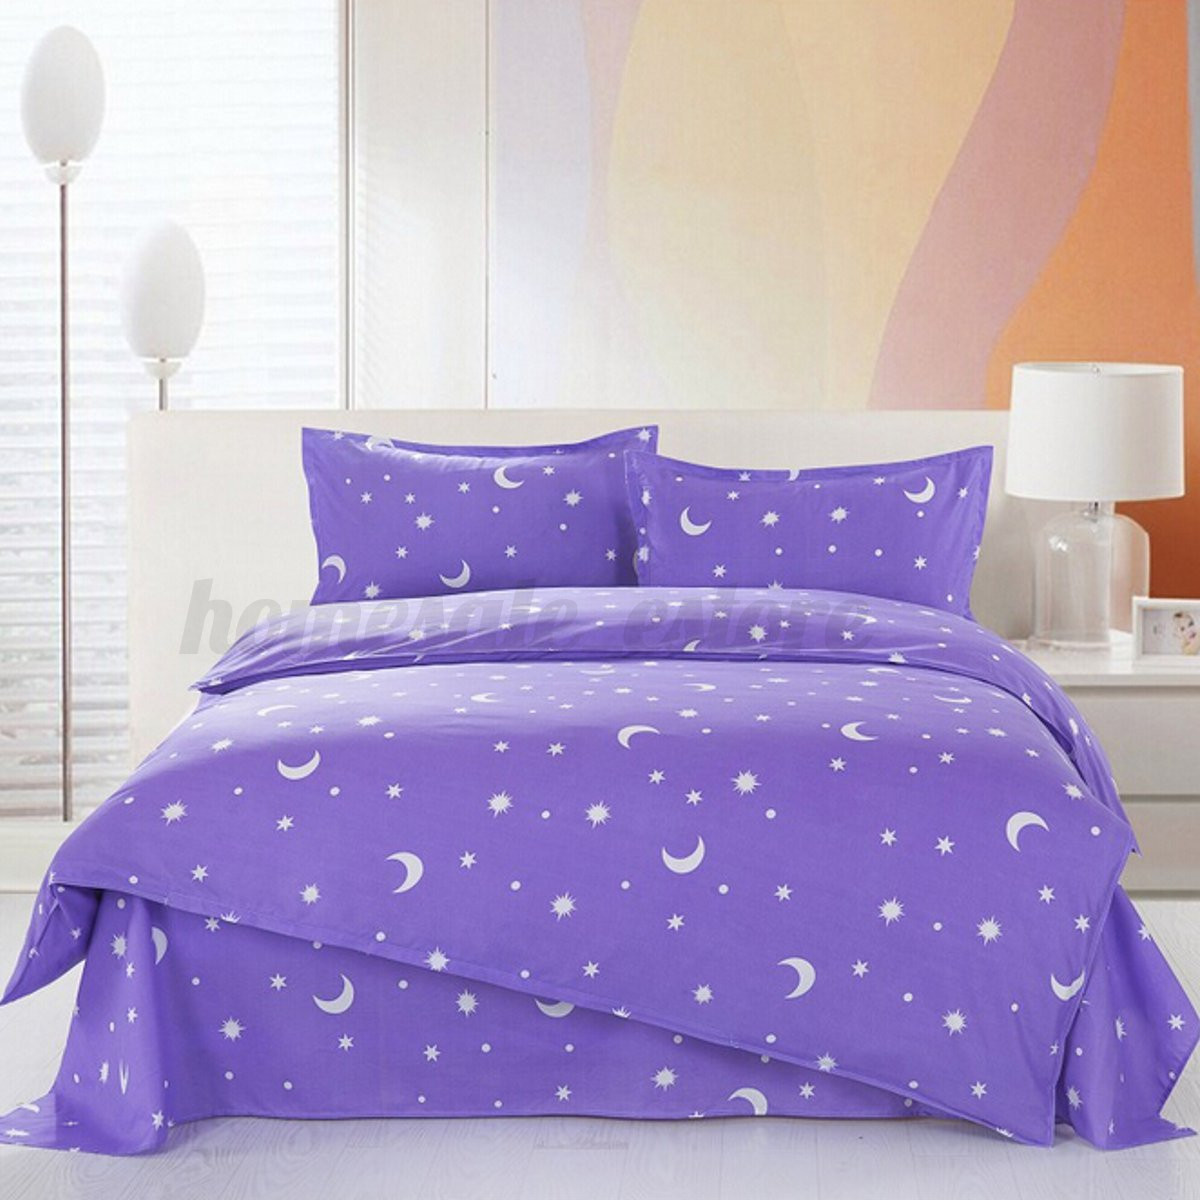 Purple Mattress Australia All Size Duvet Cover With Pillow Case Quilt Cover Bedding